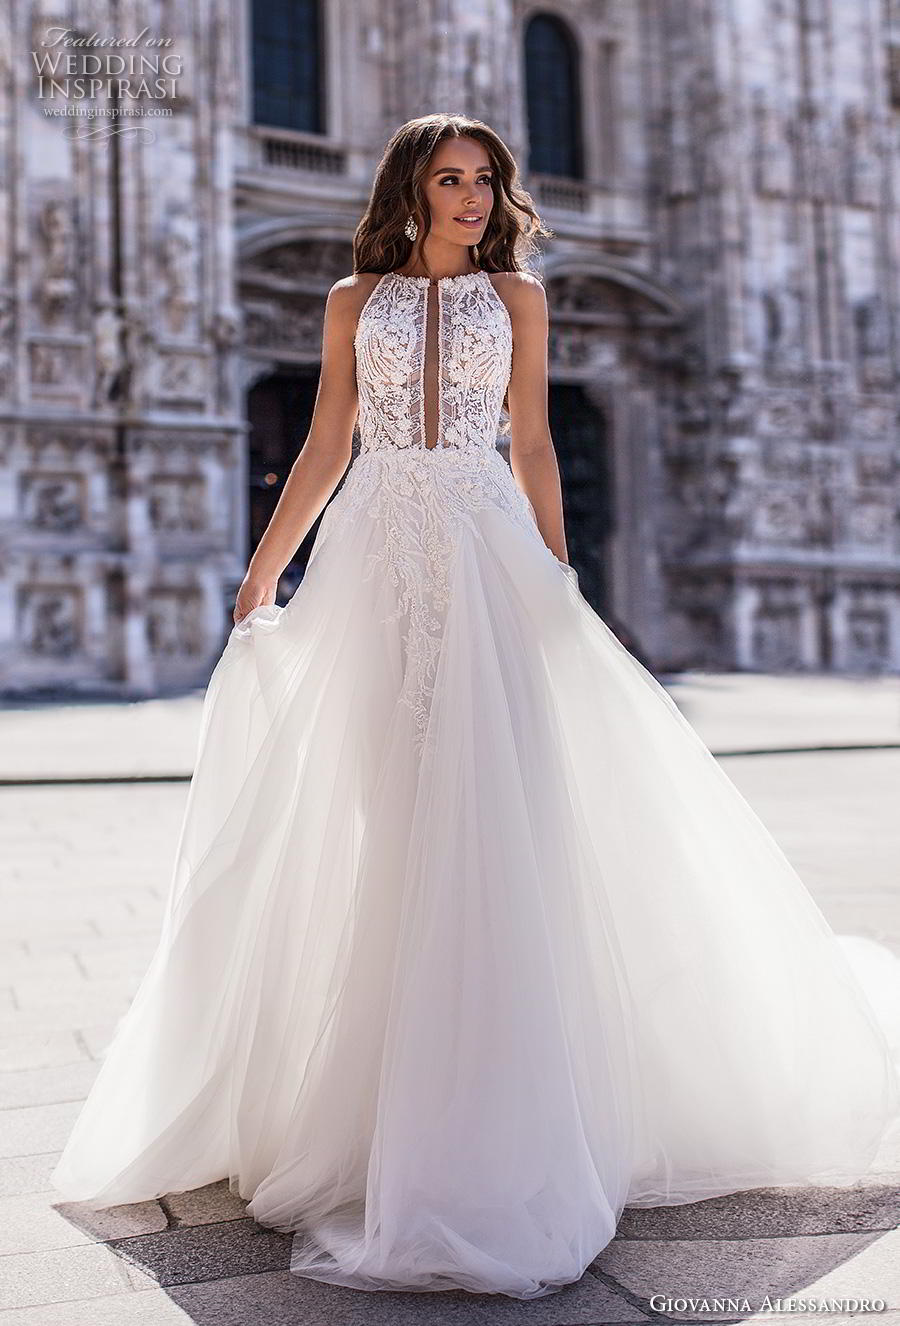 giovanna alessandro 2019 bridal sleeveless halter neck heavily embellished bodice tulle skirt romantic soft a  line wedding dress keyhole back chapel train (12) mv